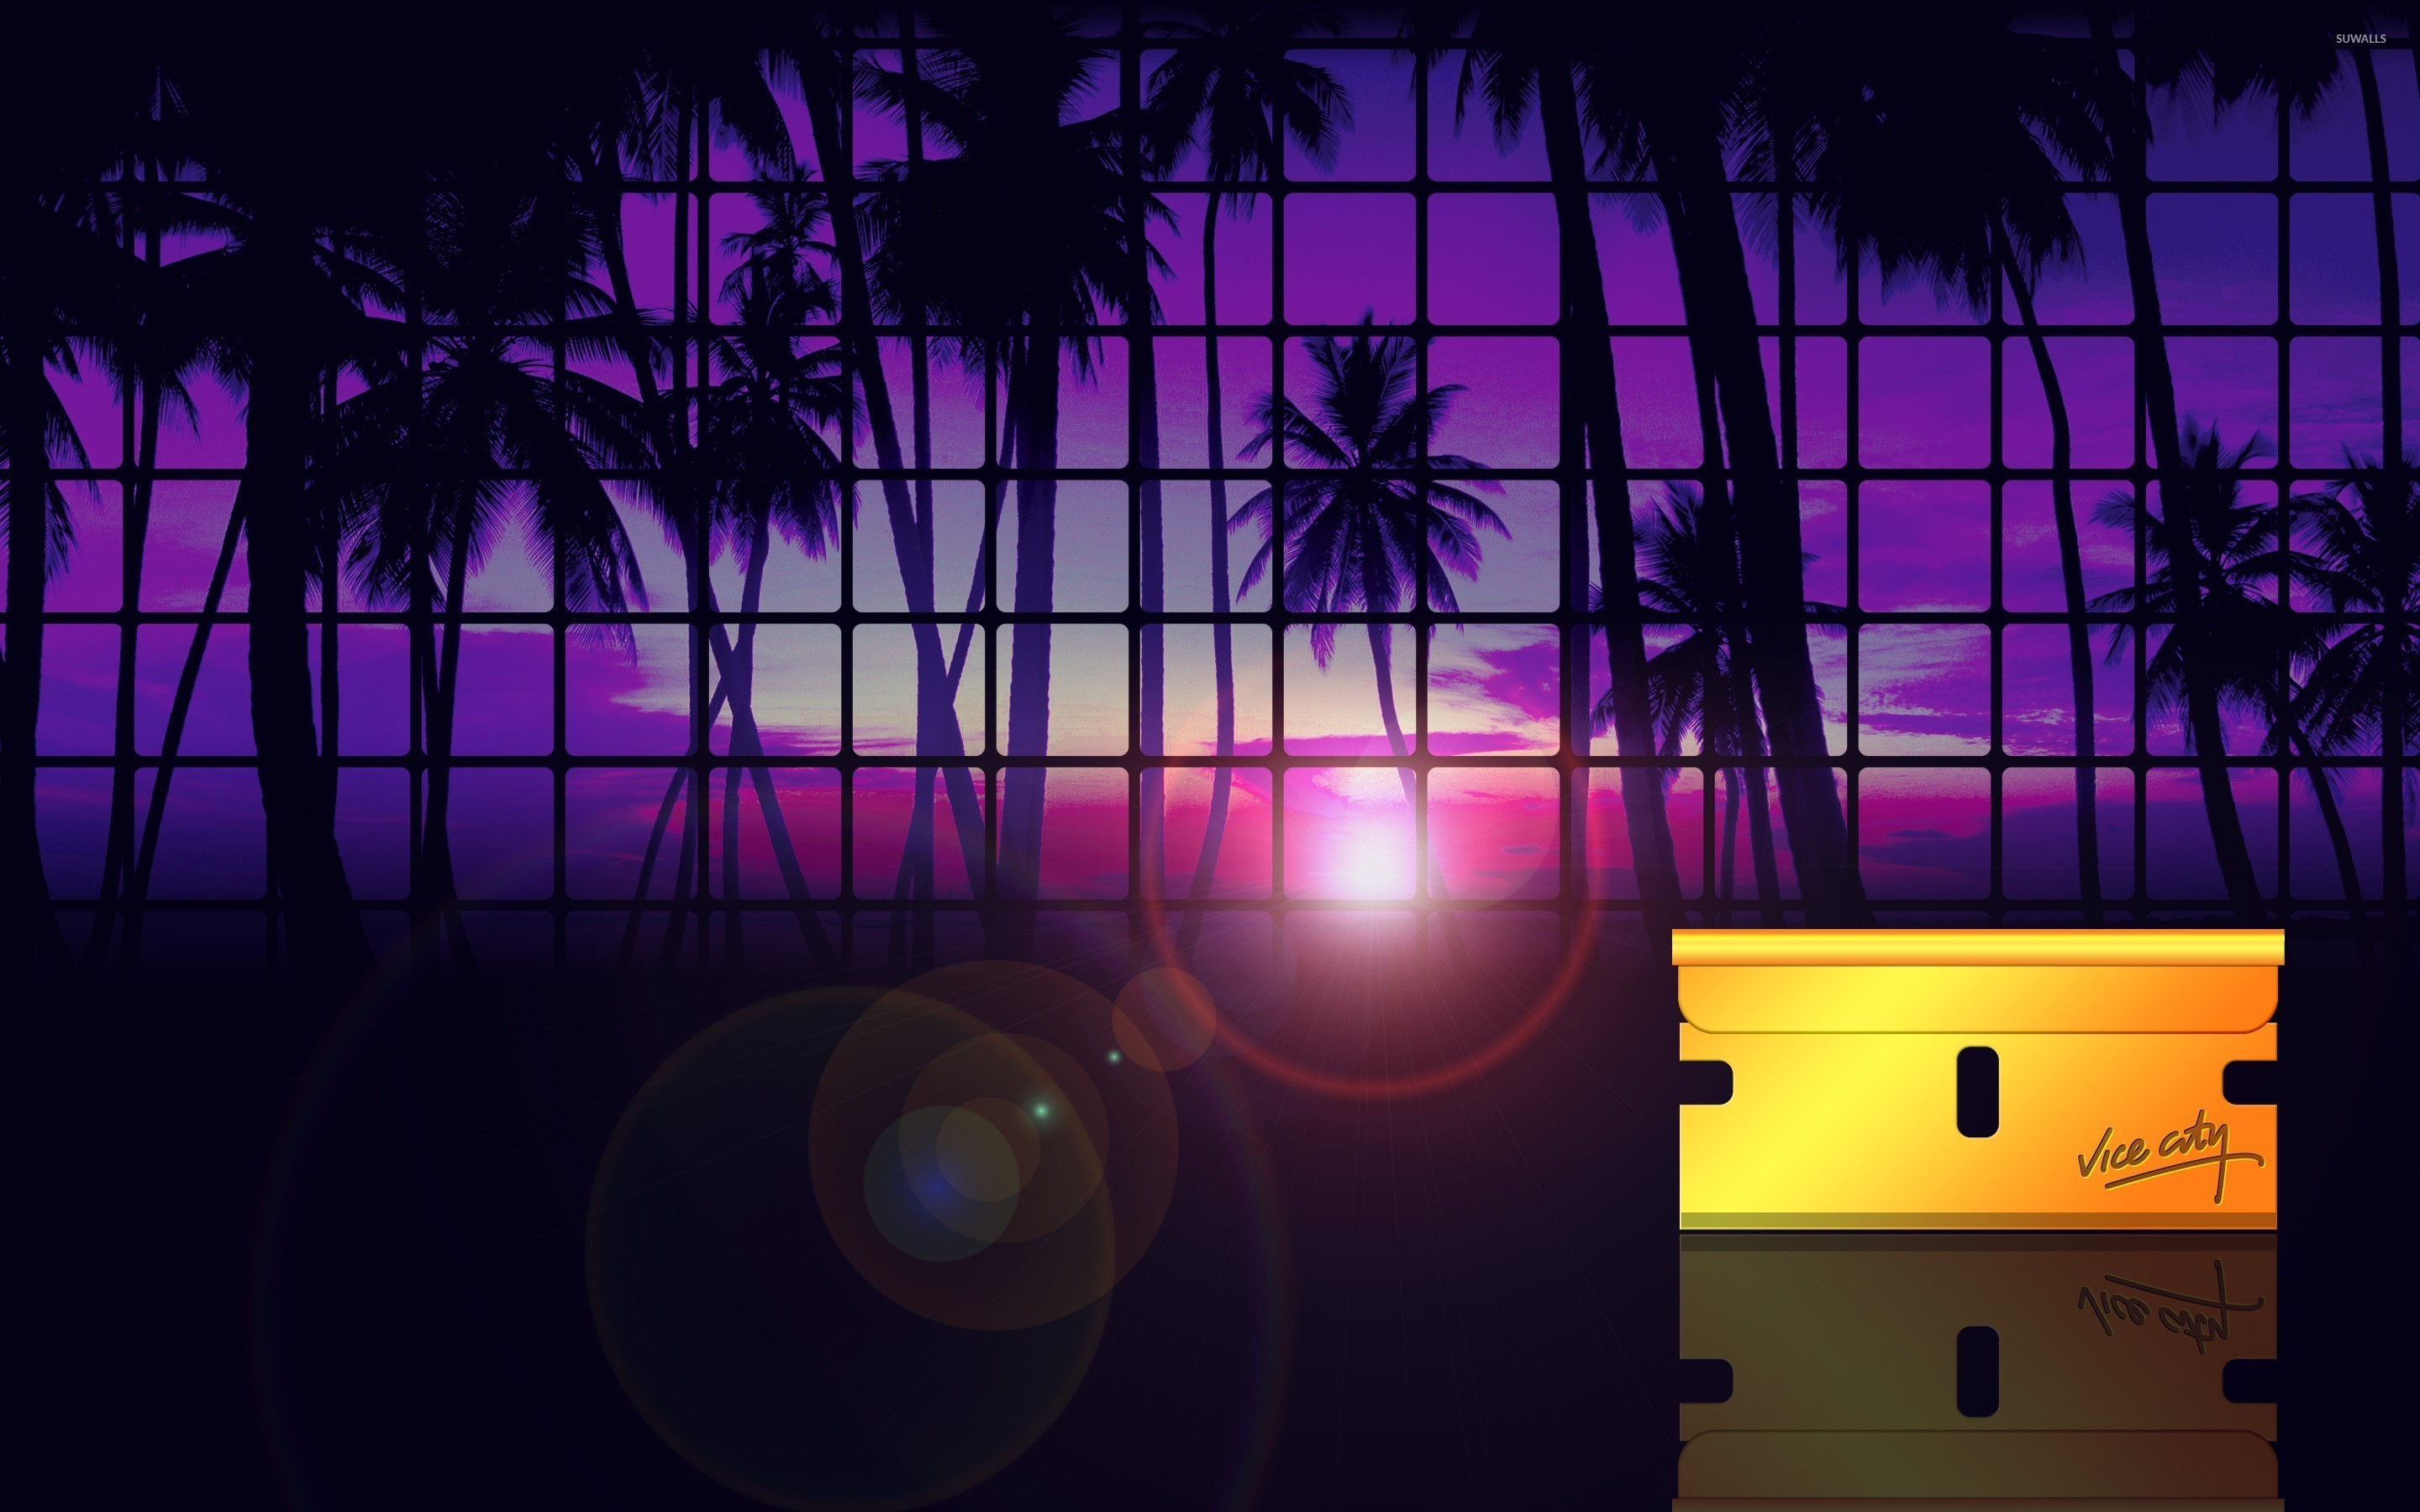 2880x1800 Grand Theft Auto: Vice City sunset wallpaper